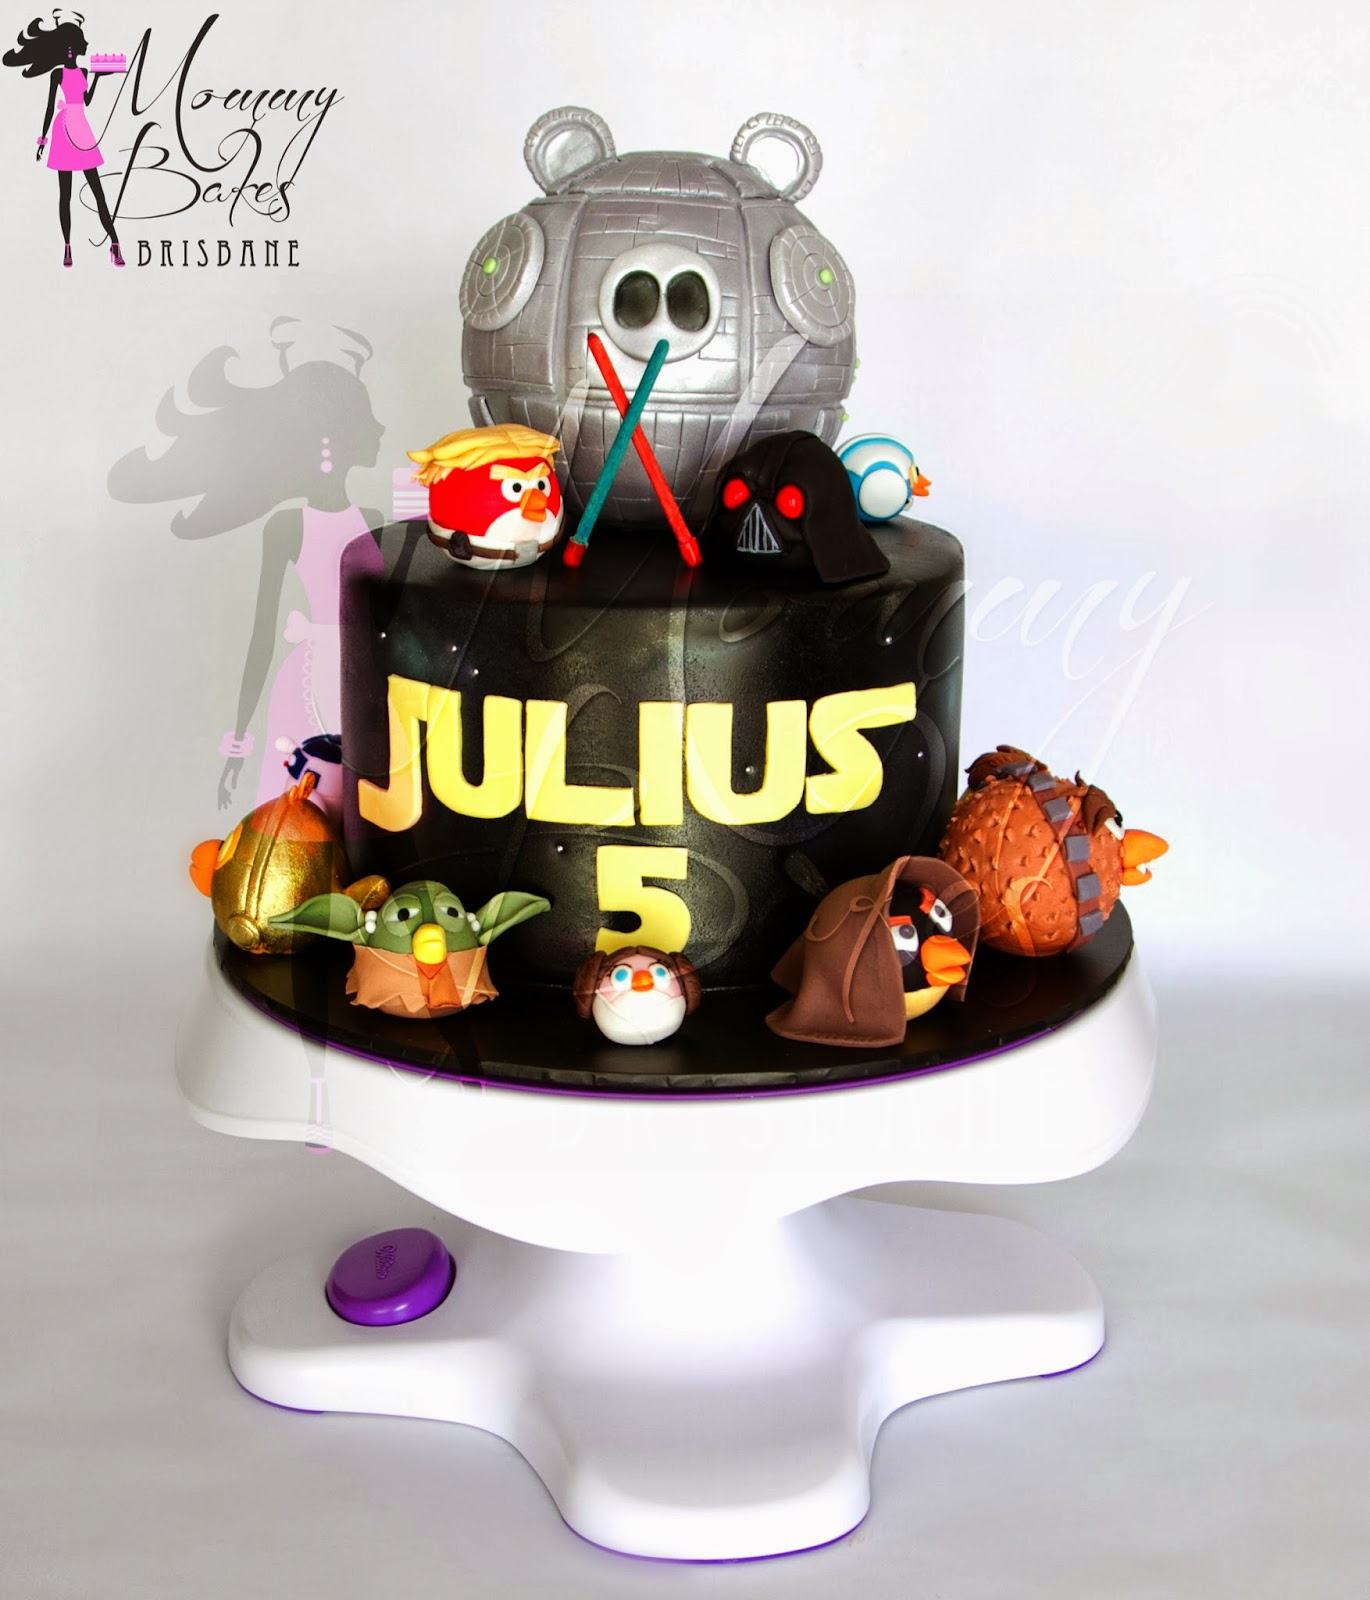 Mommybakes Brisbane Angry Birds Star Wars Cake